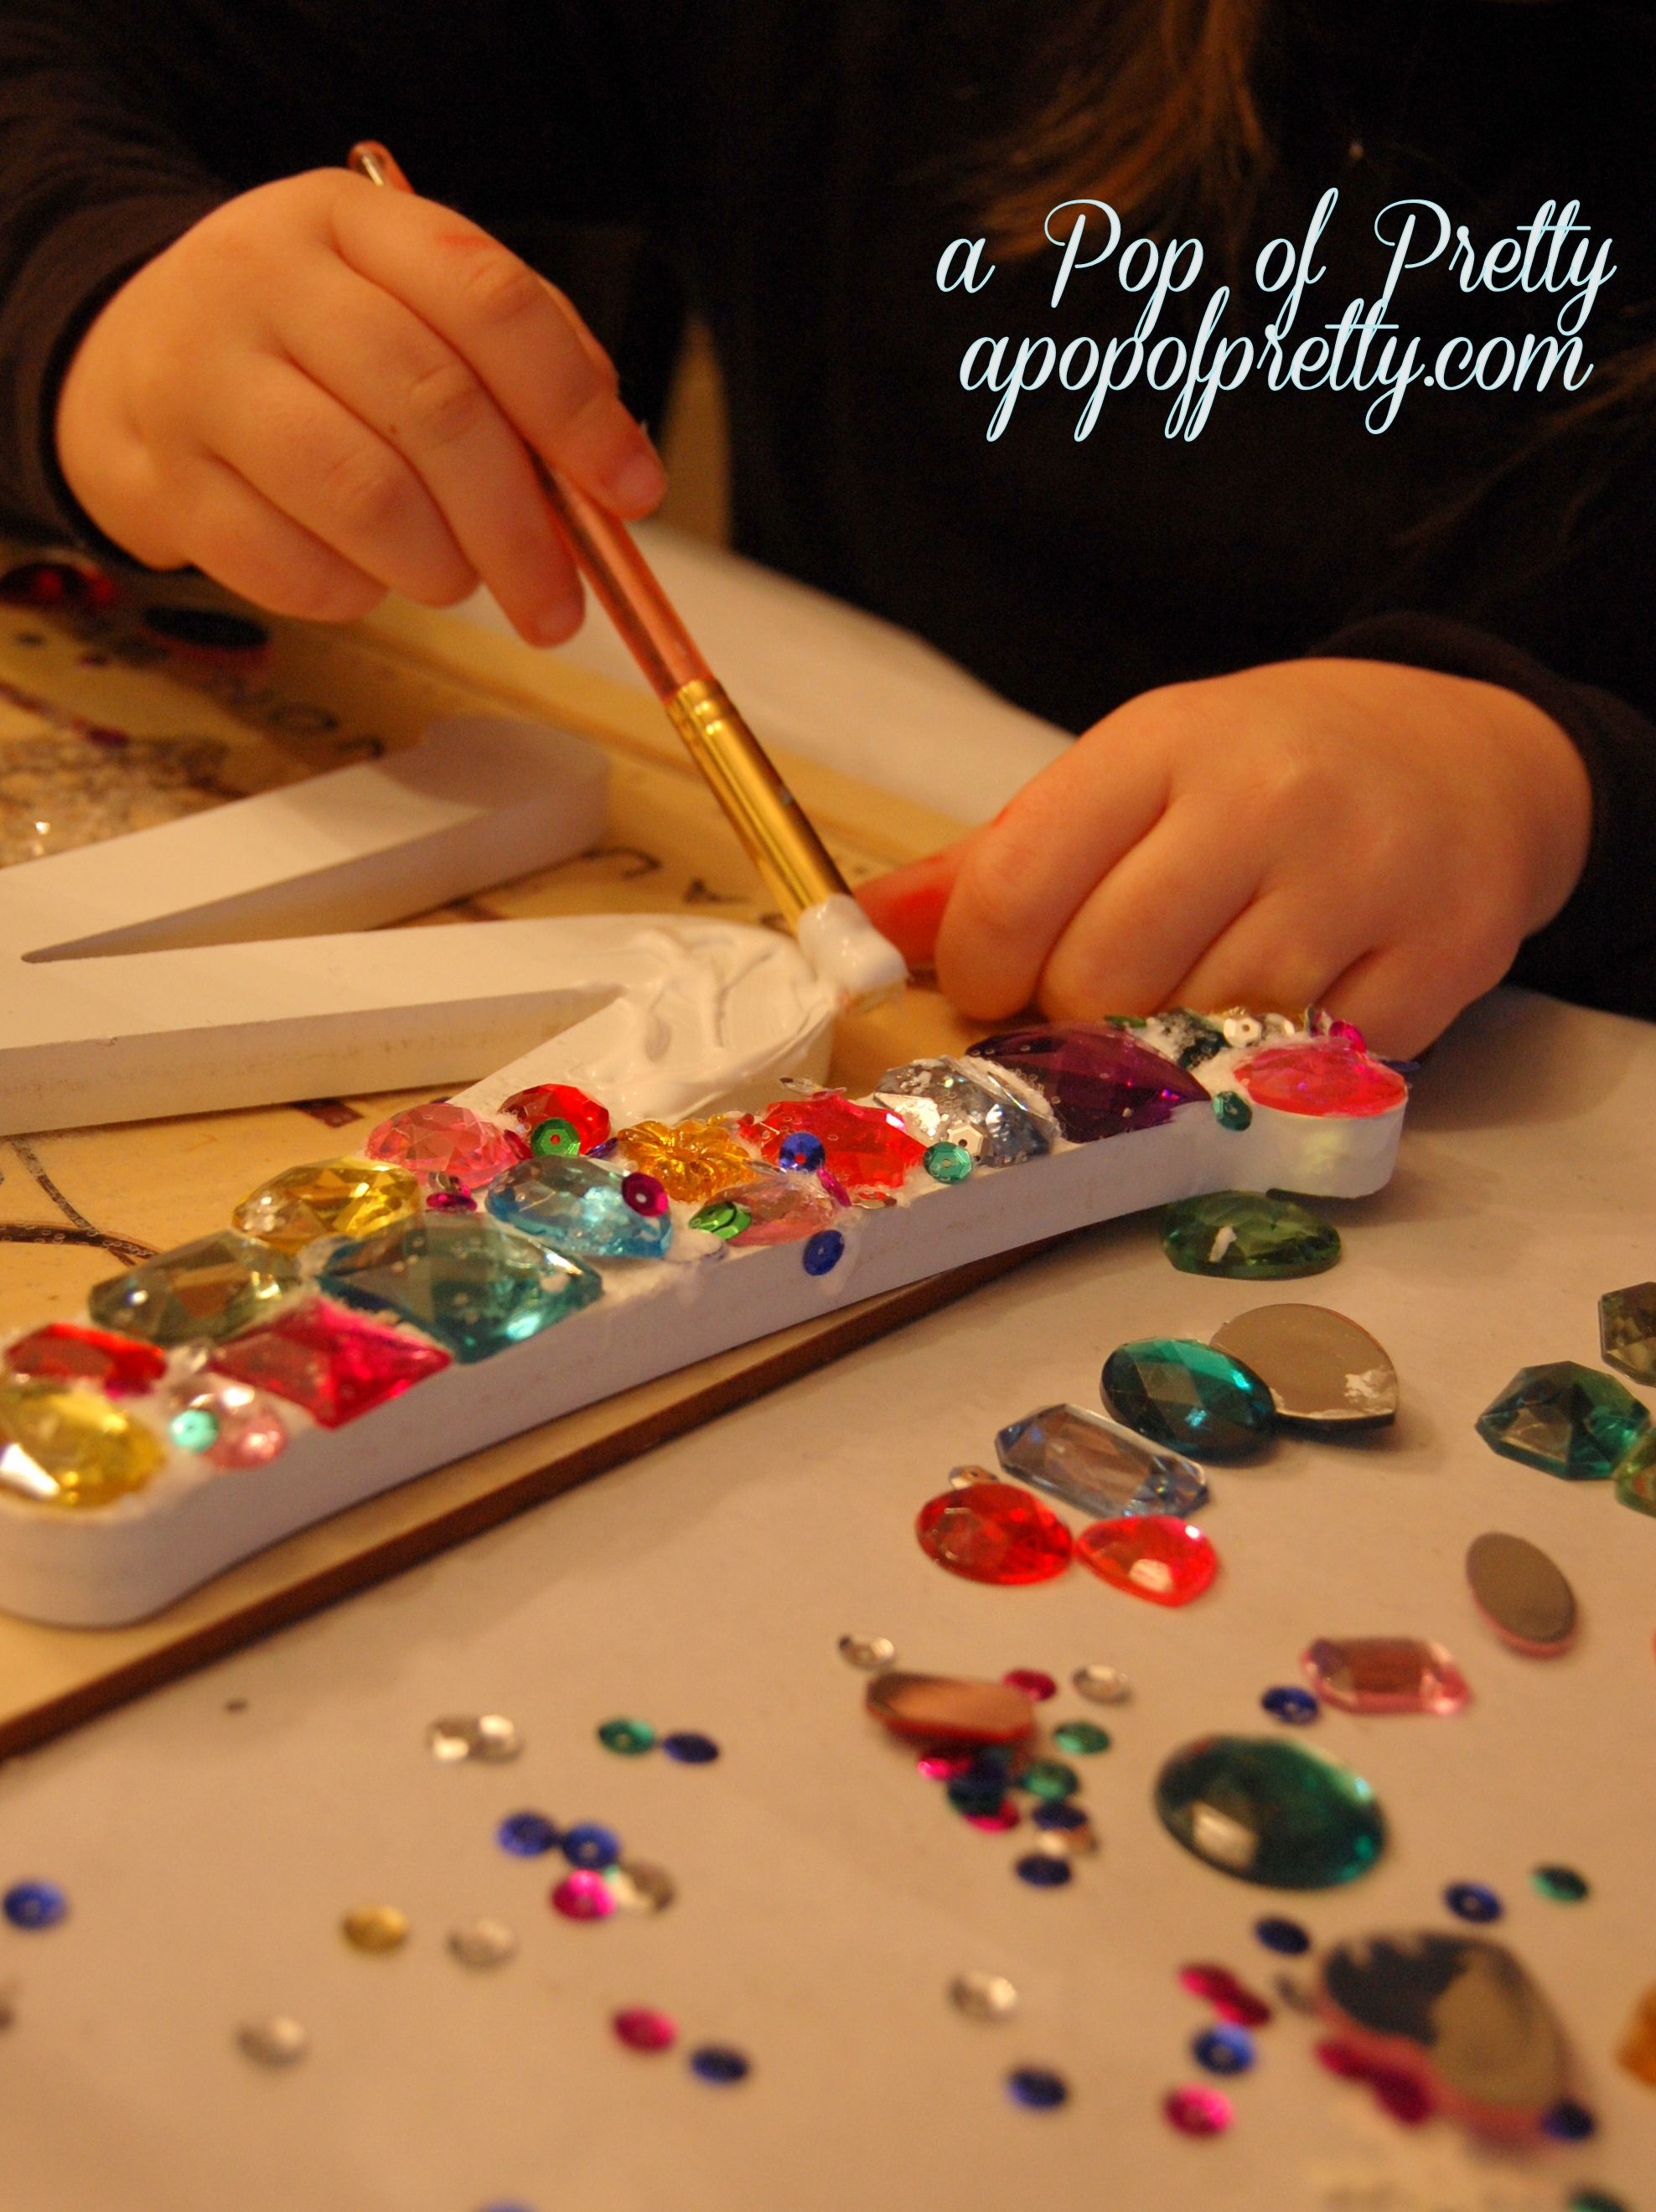 Crafts for young girls - Blinged Out Girly Girl Monogram Easy Craft Or Gift Idea For Girls